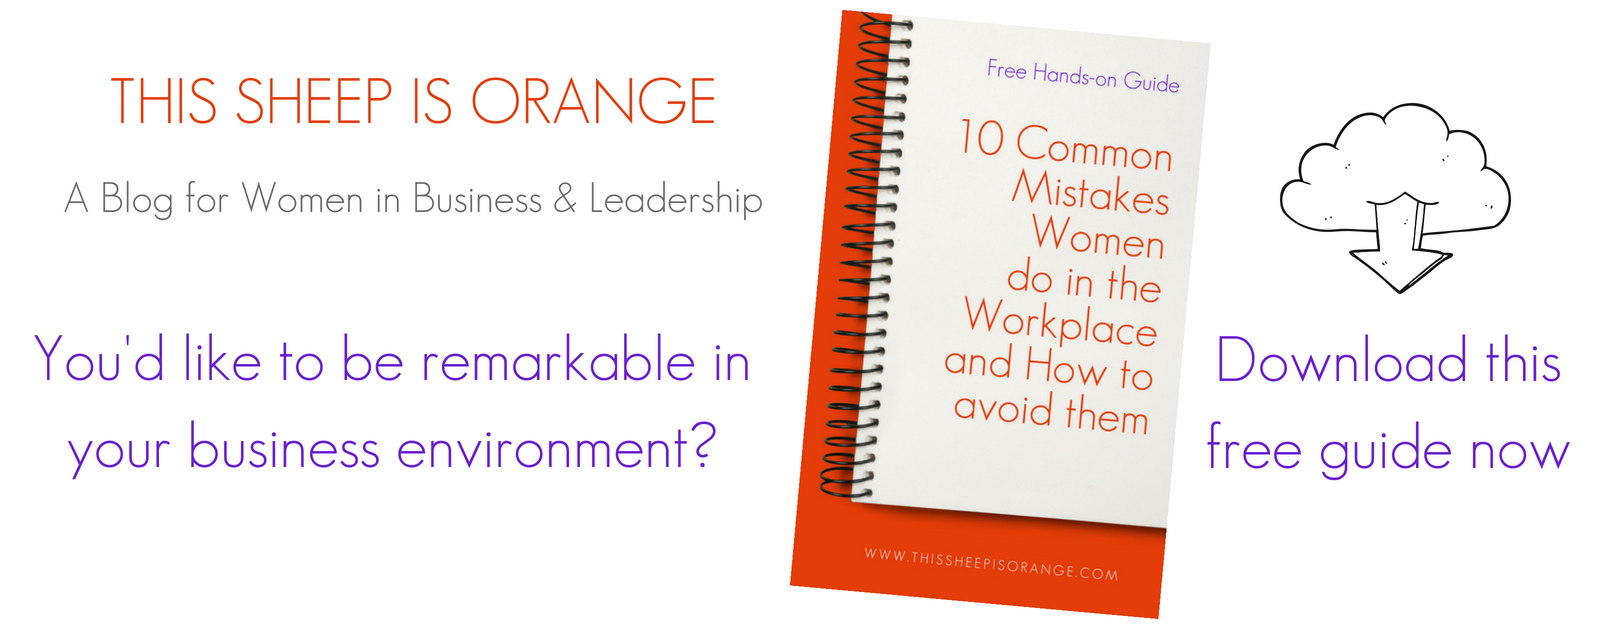 download the free guide 10 common mistakes women do in the workplace and how to avoid them